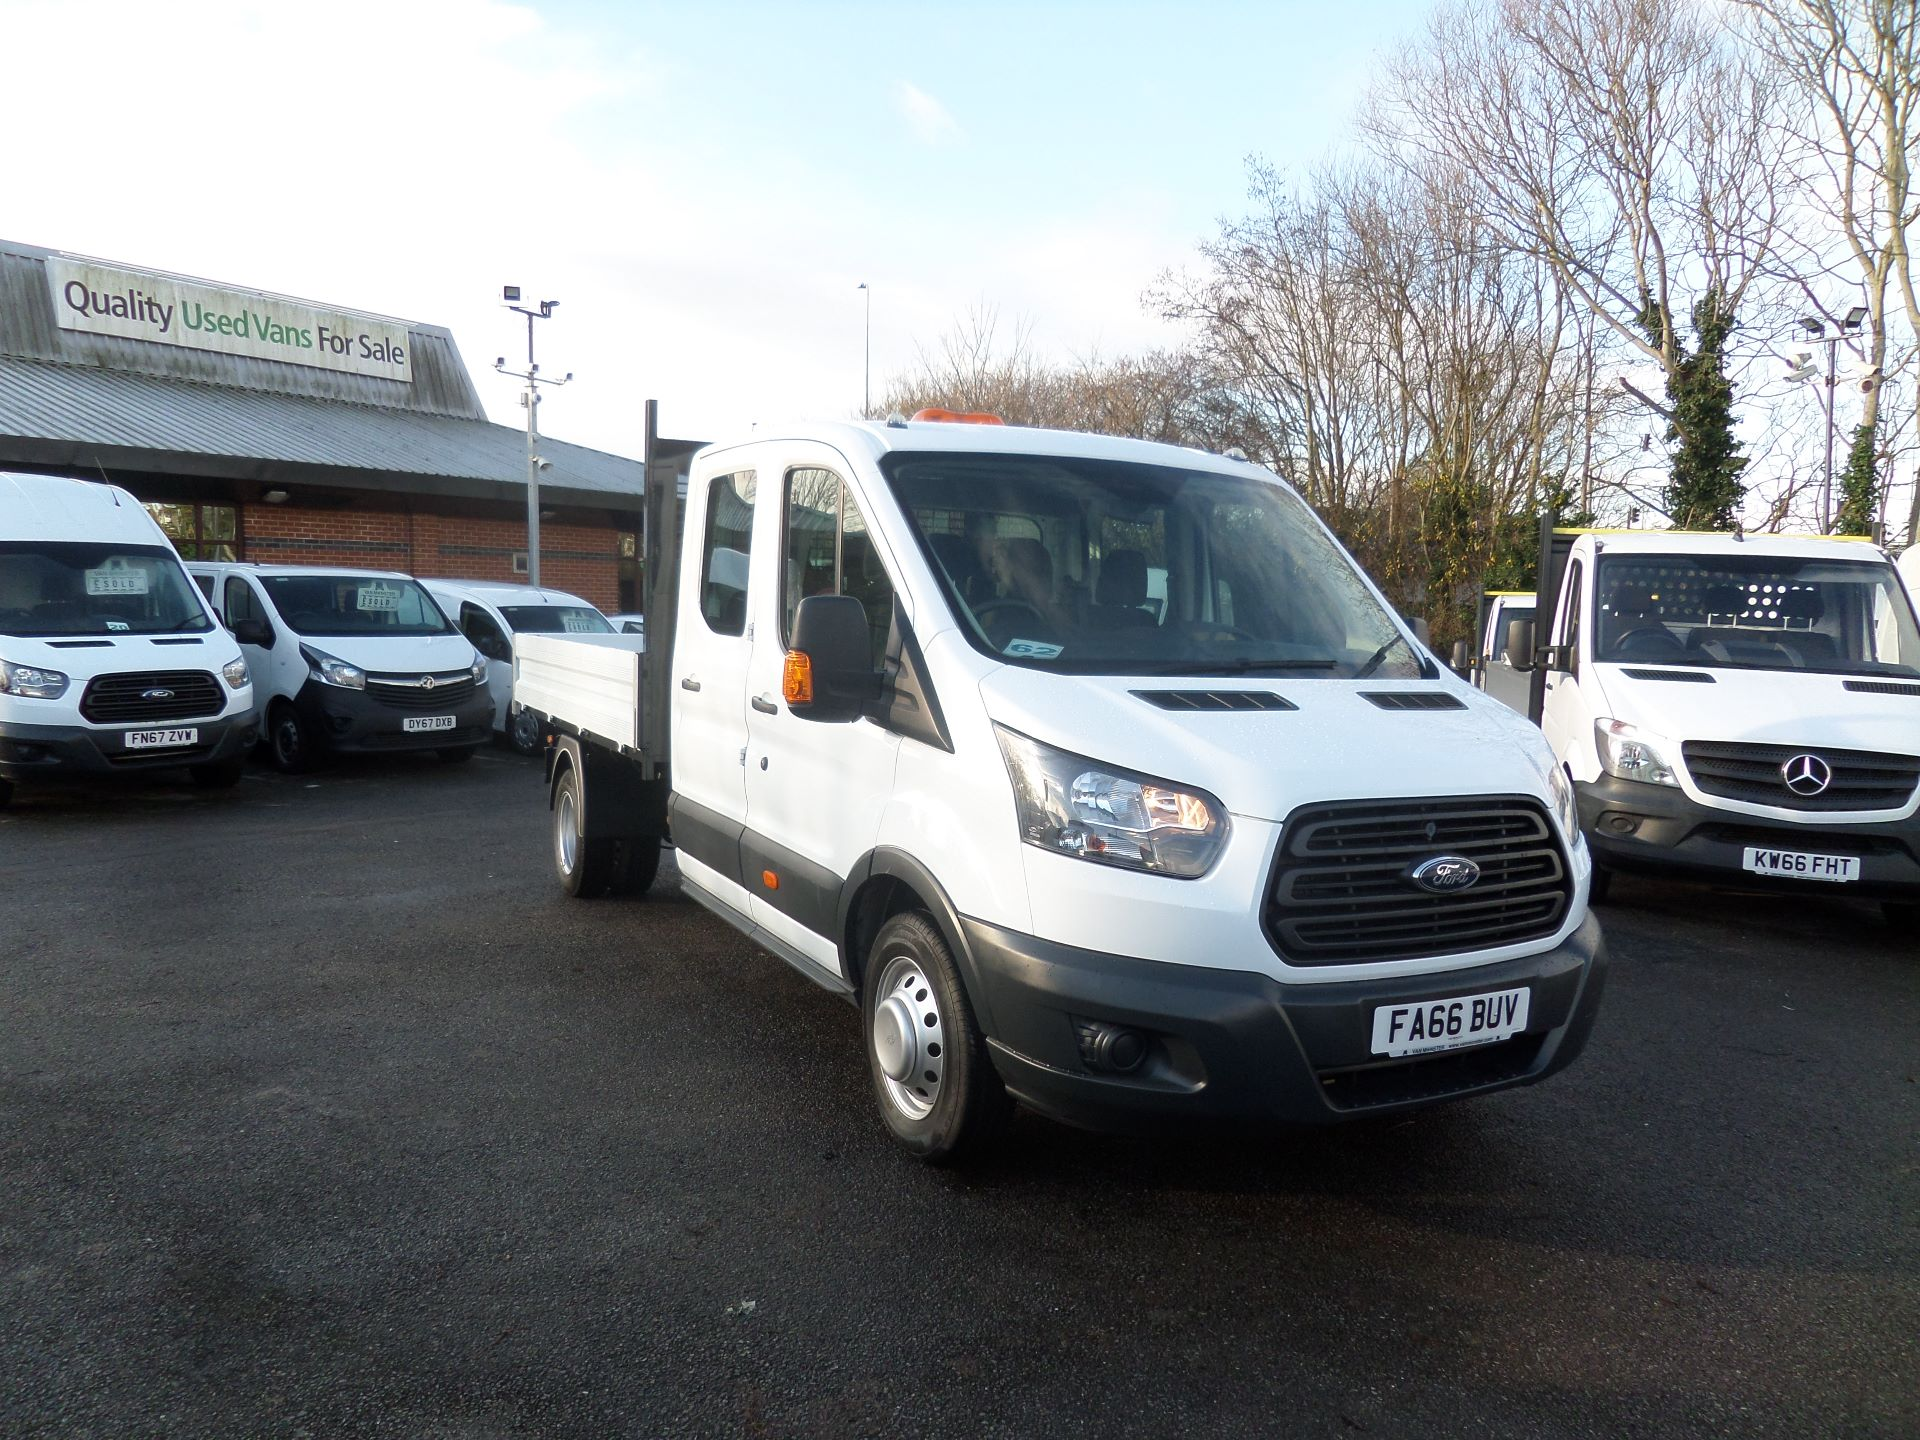 2017 Ford Transit 2.0 Tdci 130Ps Double Cab Tipper Euro 6 (FA66BUV)